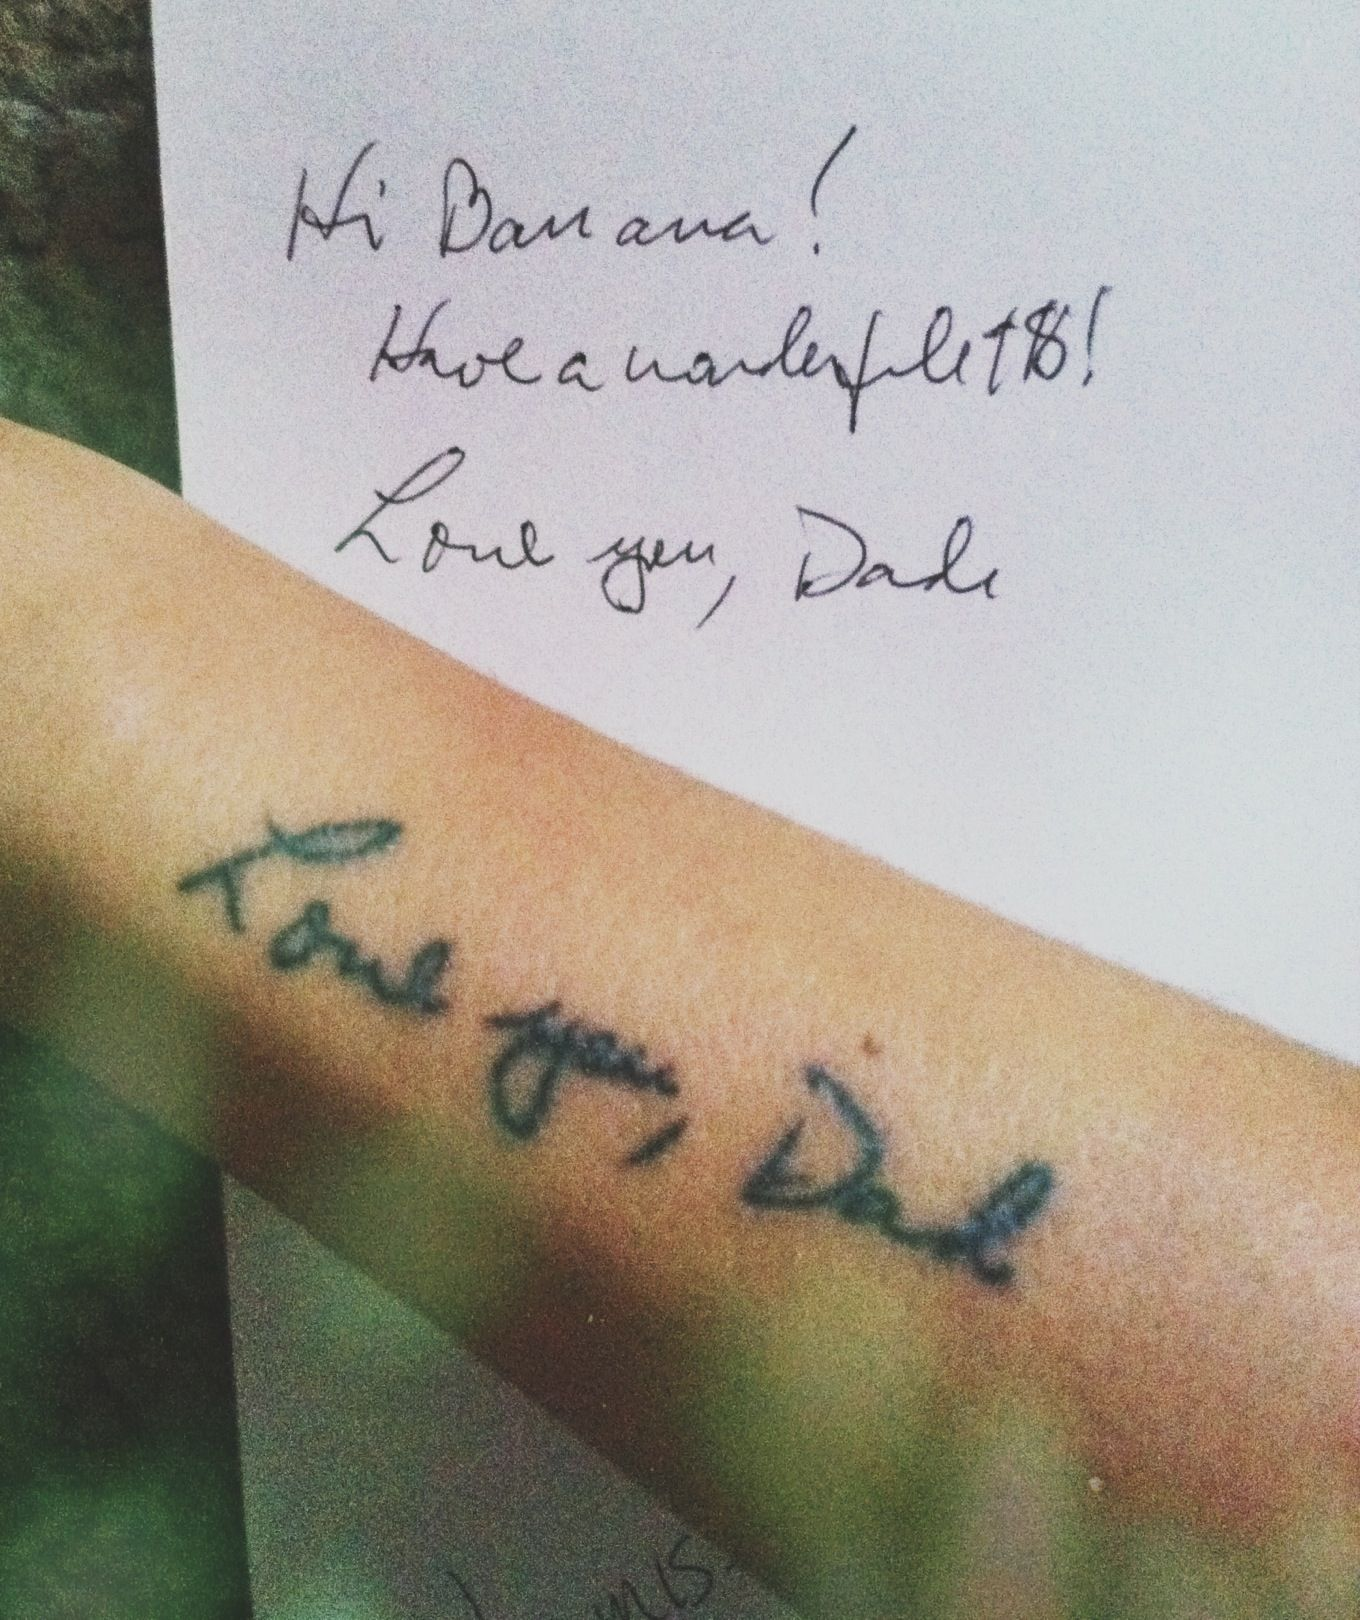 Hand Writing Tattoo After Dad Passed Away Tattoo Handwriting Wristtattoo Script Tattoofordad Mem Writing Tattoos Handwriting Tattoos Tattoos With Meaning